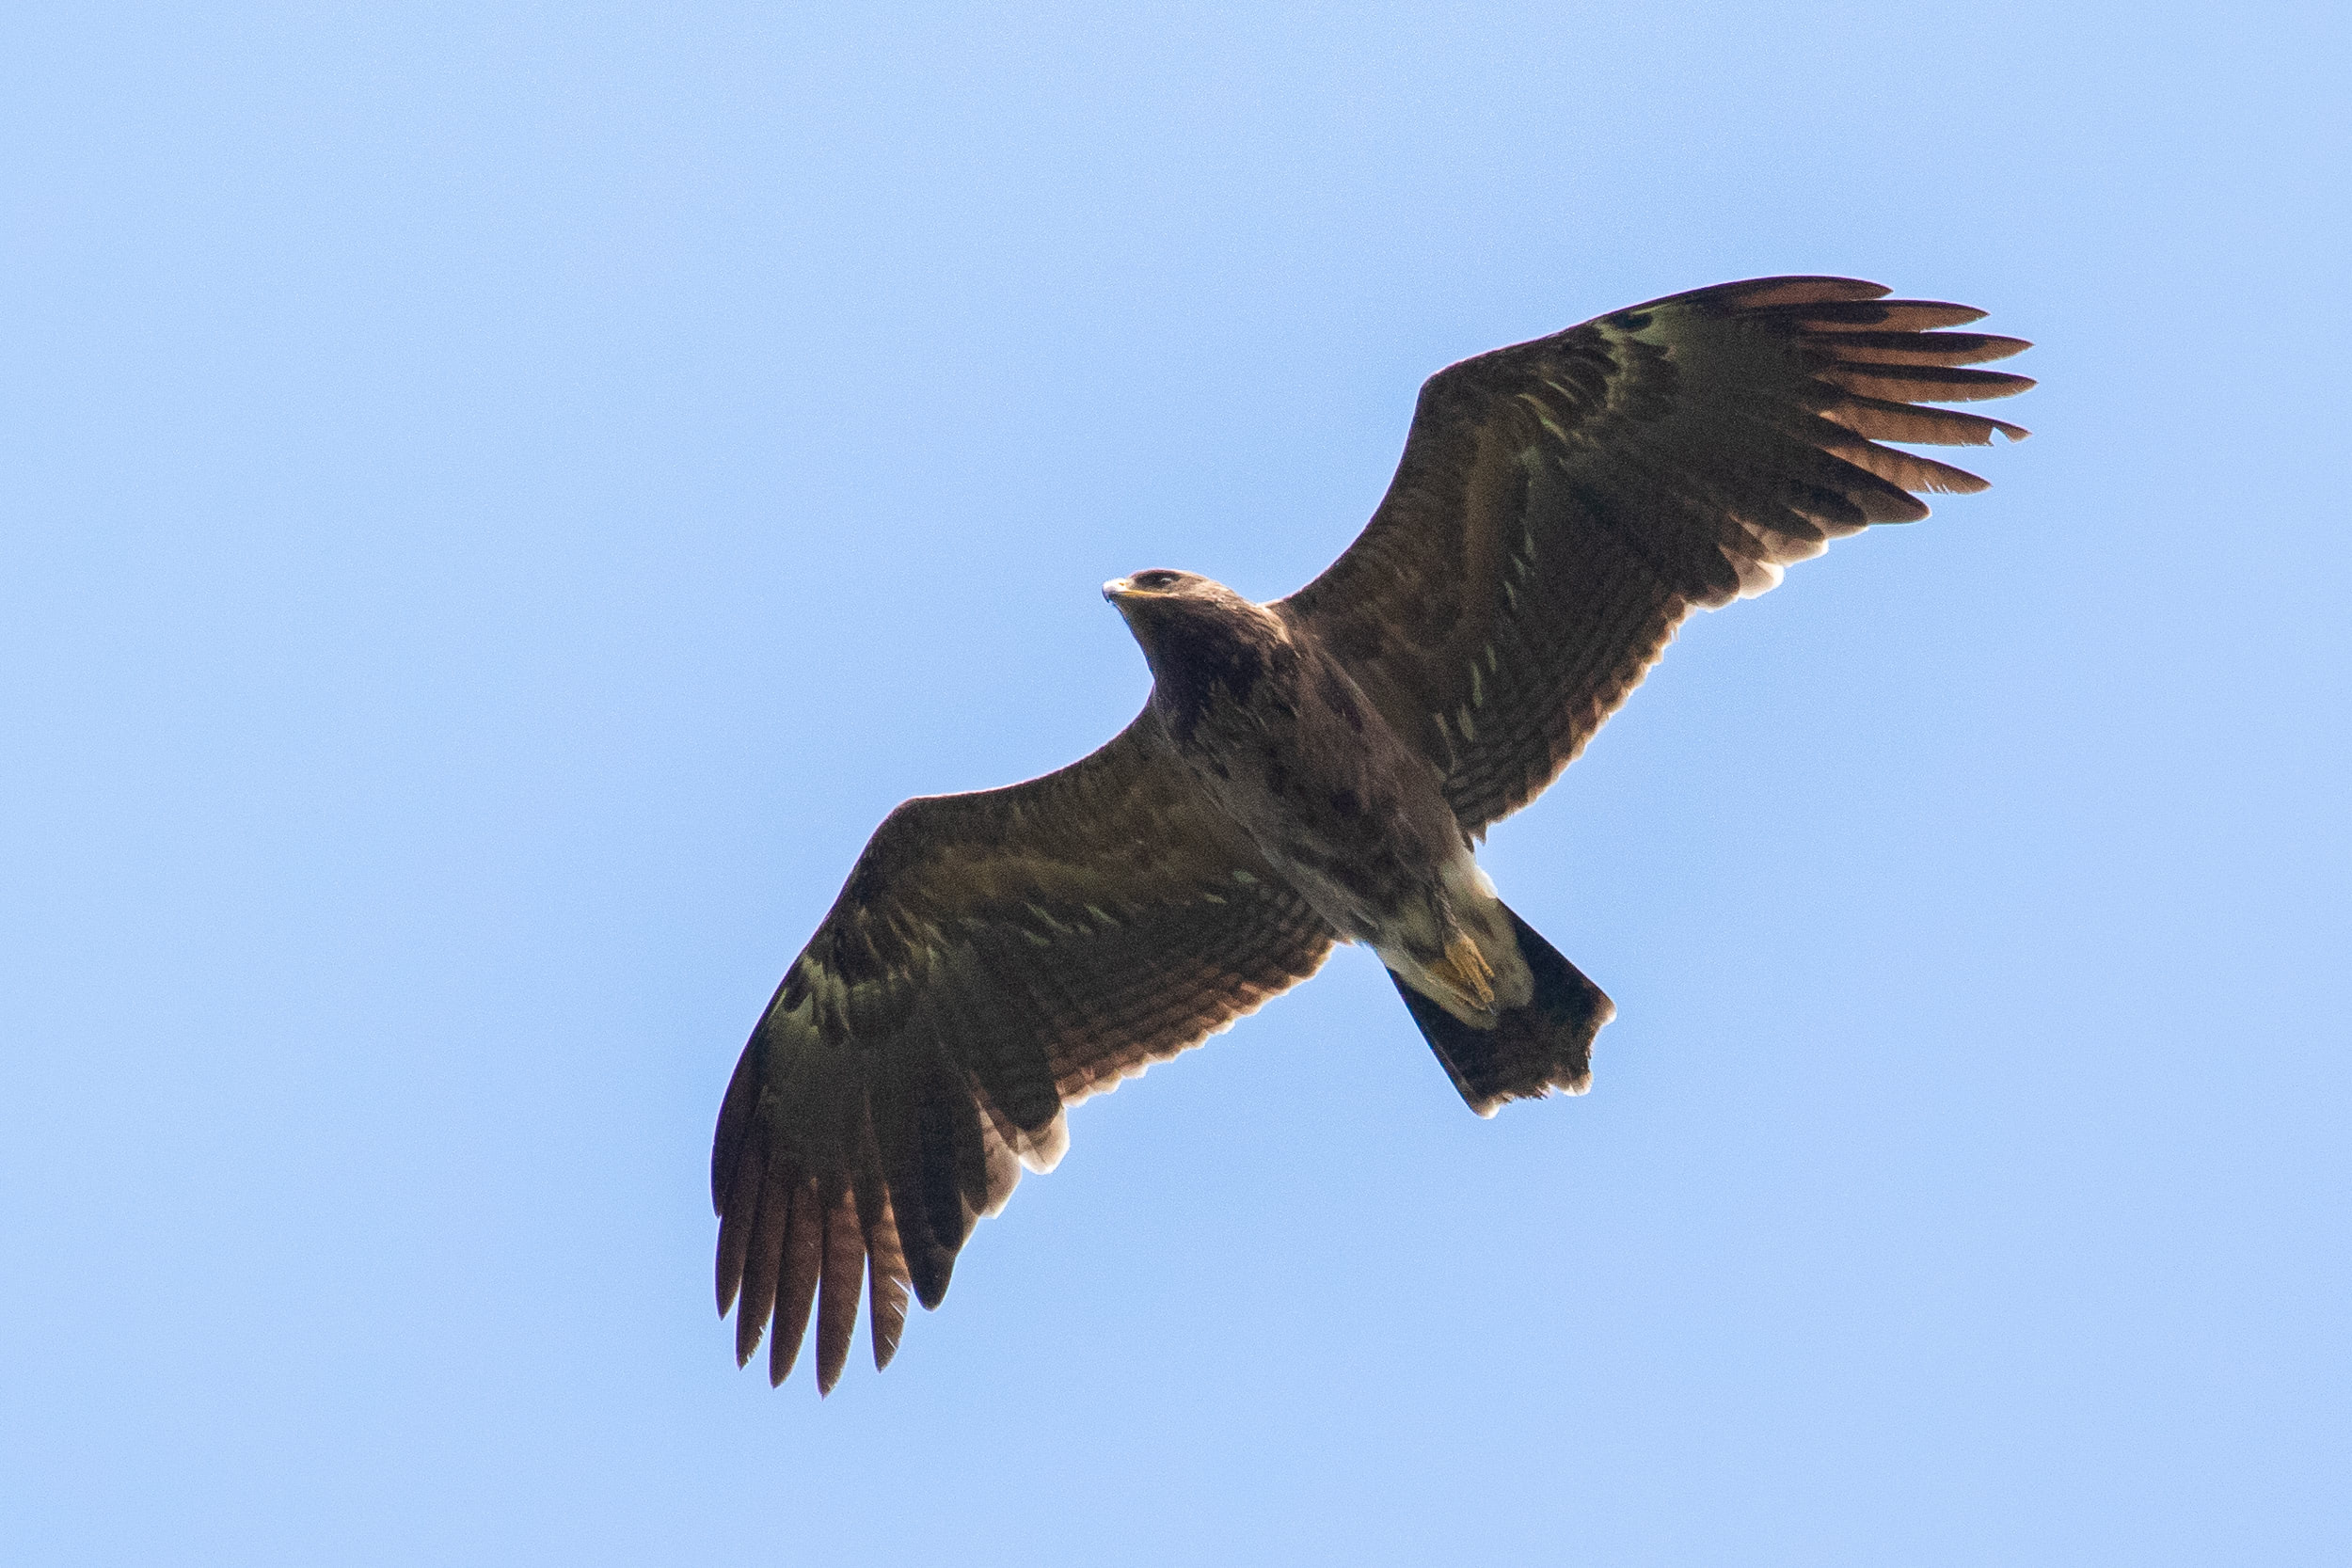 August 26th.  Lesser Spotted Eagle immature, one of the earliest birds. Second calendar year bird with replaced inner primaries and the typical barring throughout the secondaries all the way to the feather tips.